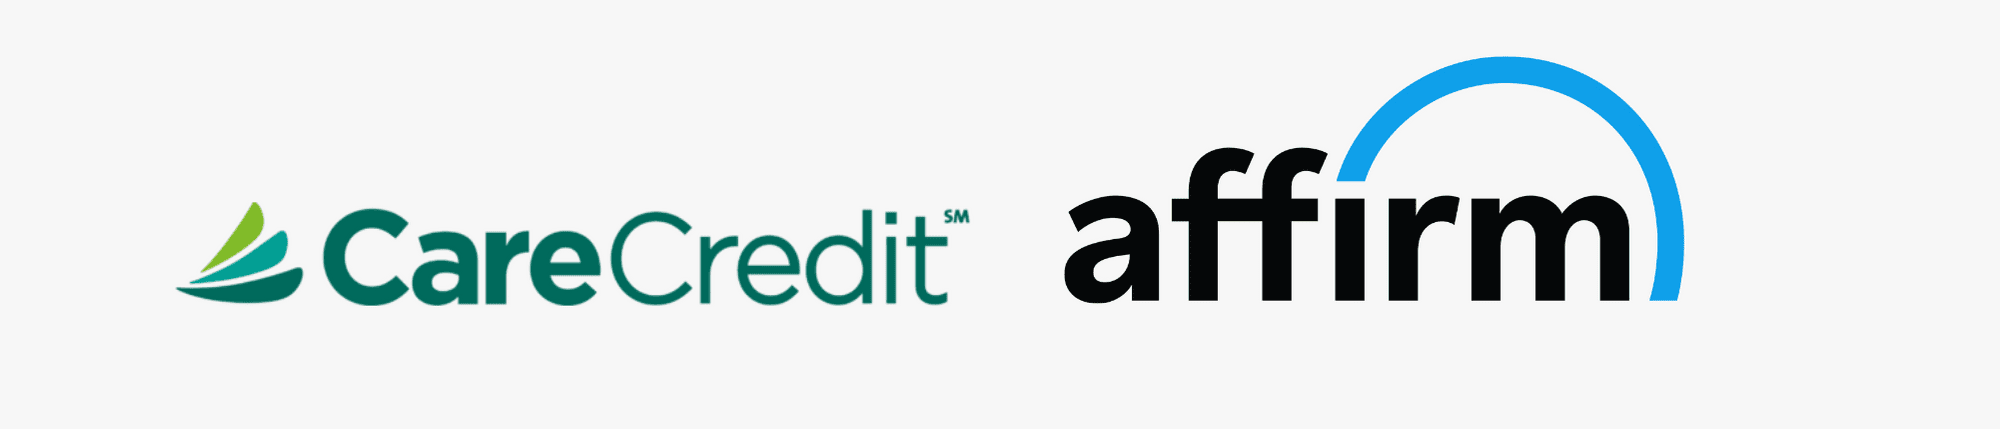 Care Credit and Affirm Logos